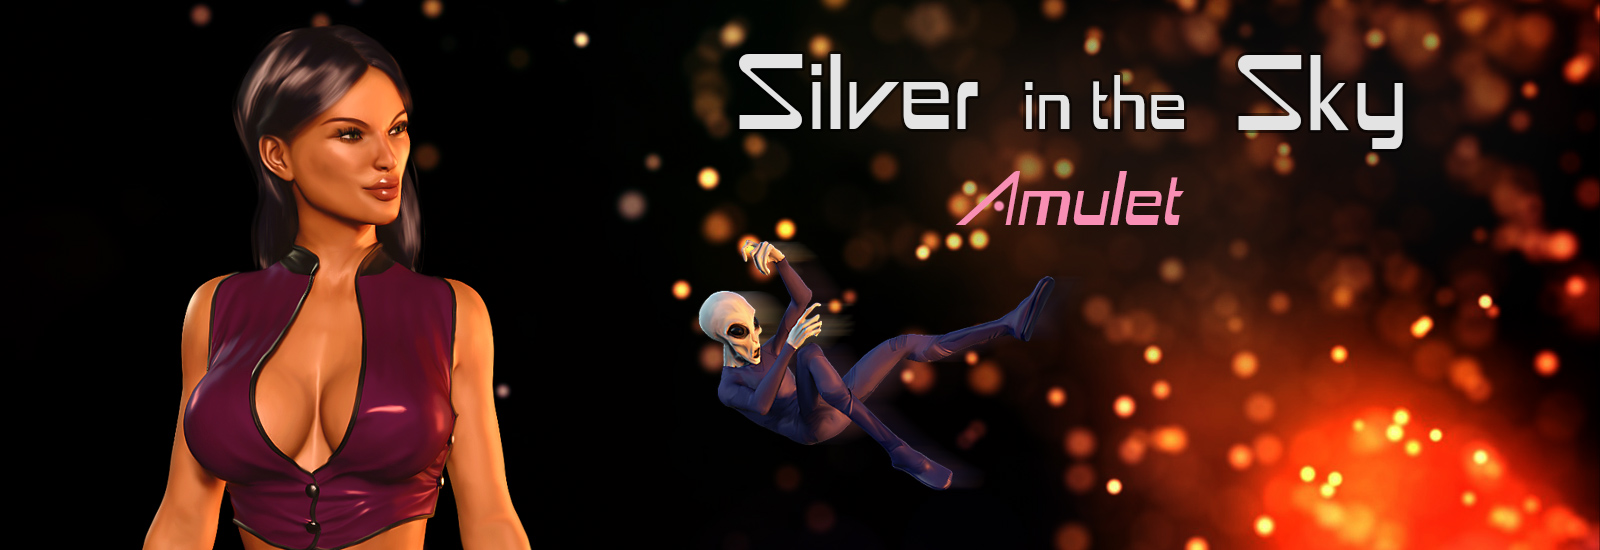 Silver in the Sky: Amulet